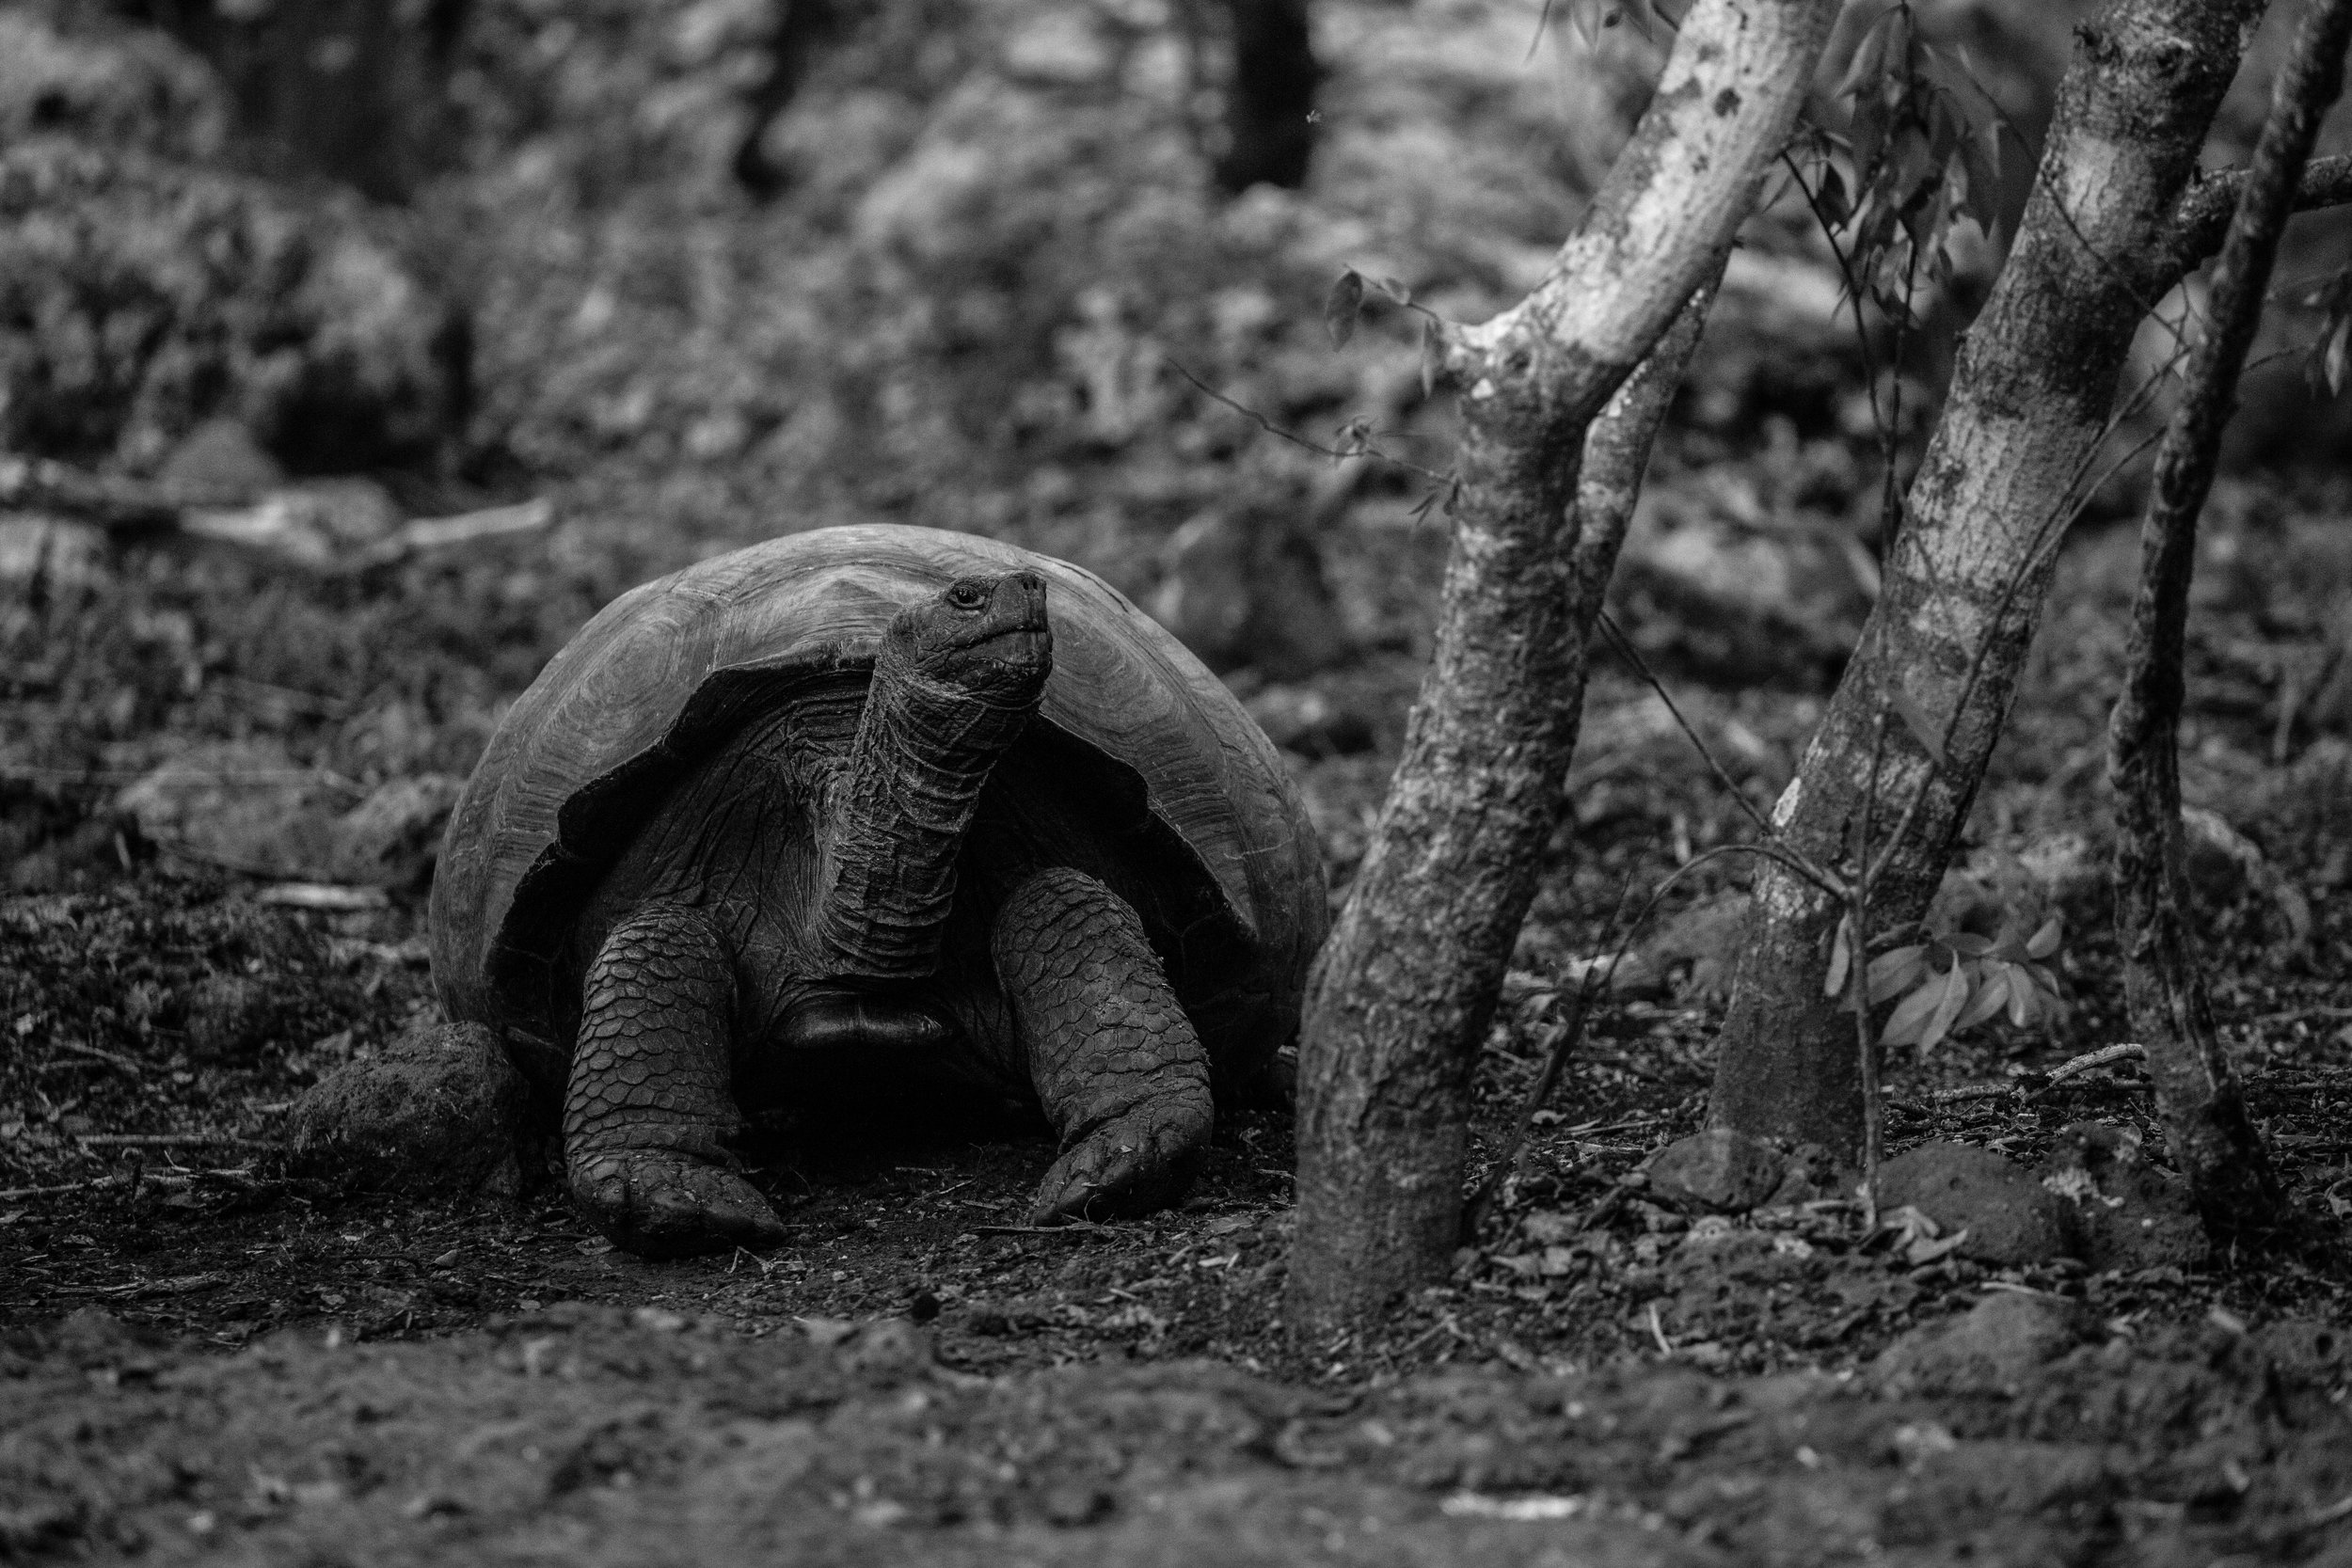 At age 70 male tortoises still have a long life ahead as they can reach 150 years